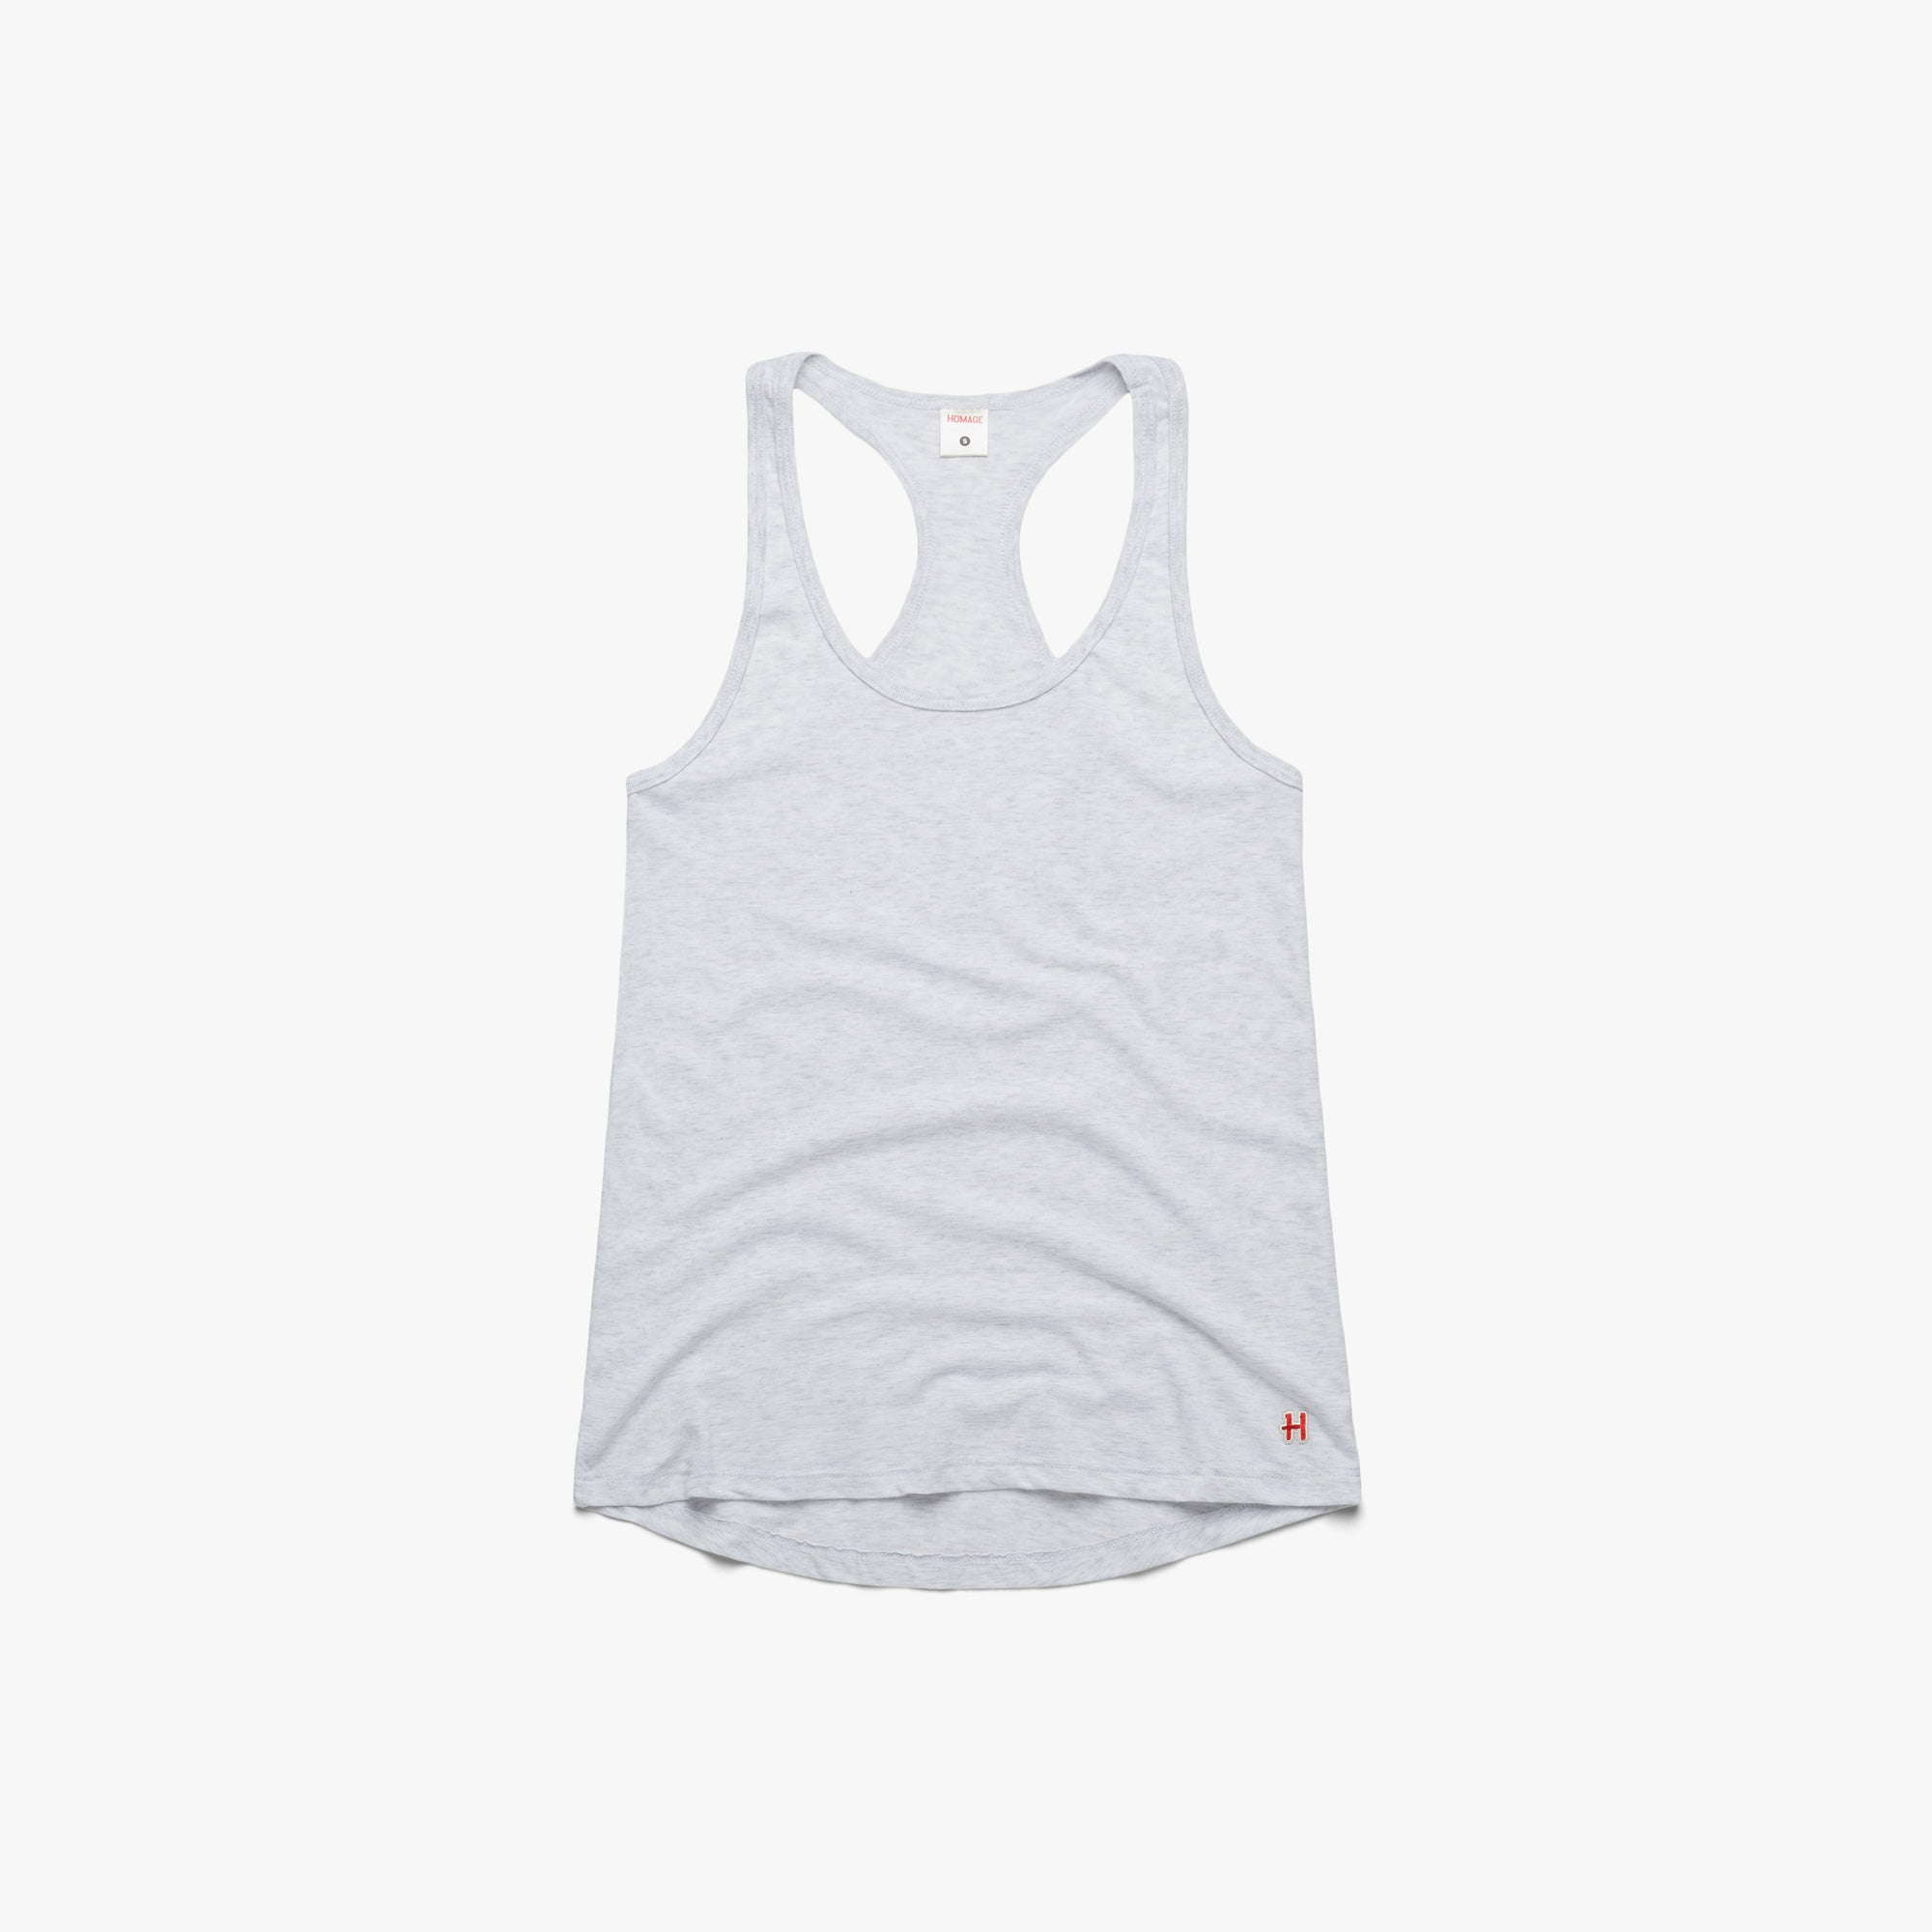 Women's Go-To Racerback Tank Top